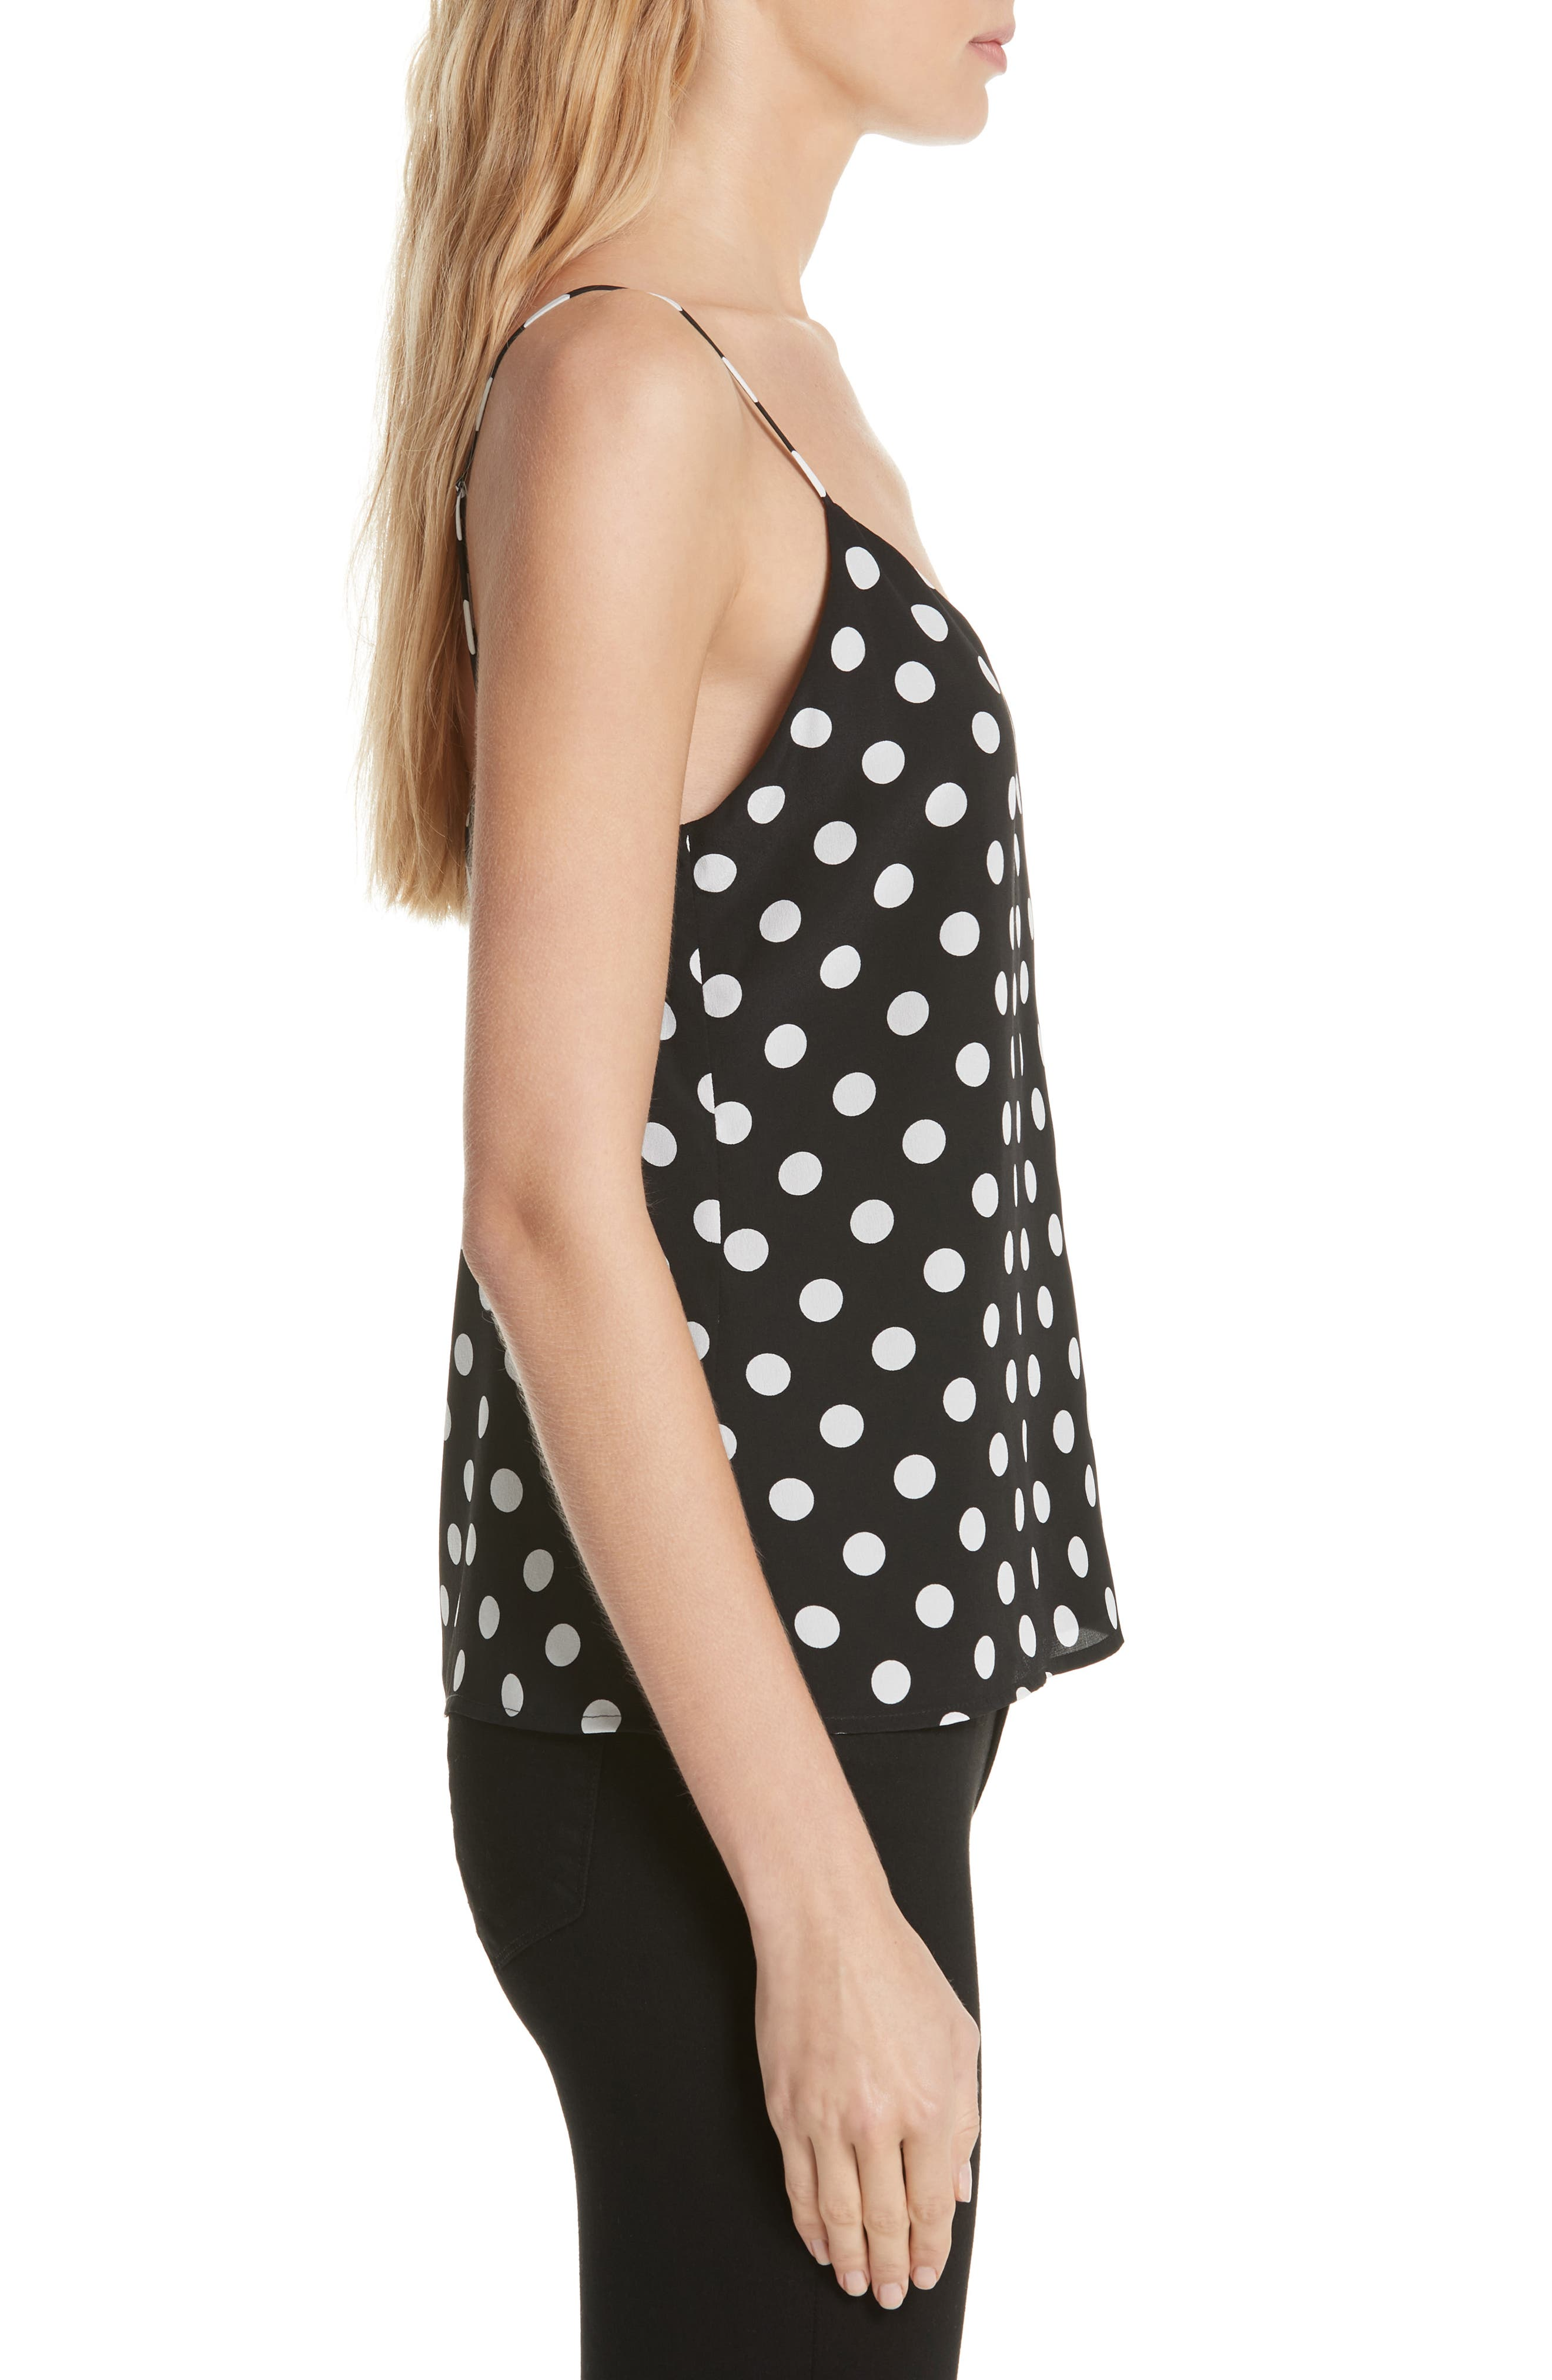 L'AGENCE,                             Jane Polka Dot Camisole,                             Alternate thumbnail 3, color,                             BLACK/ IVORY